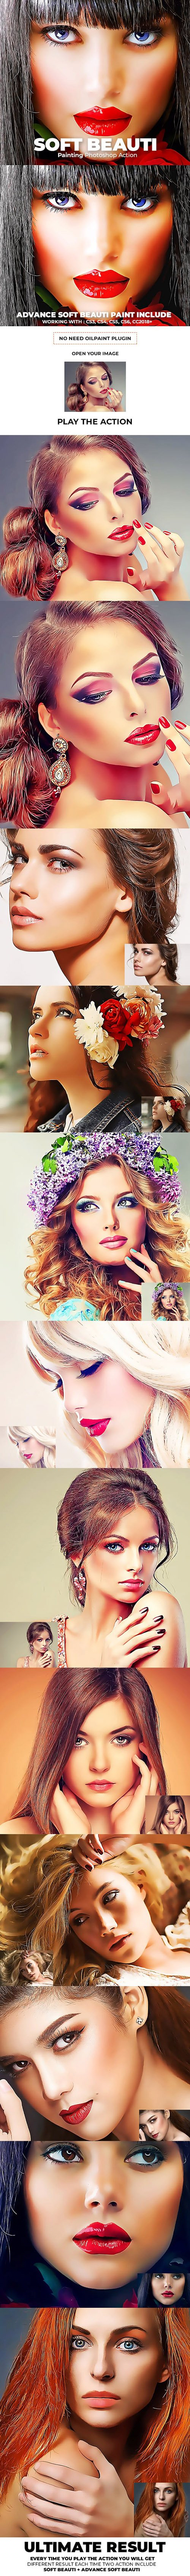 GraphicRiver - Soft Beauty Painting Photoshop Action 23218455